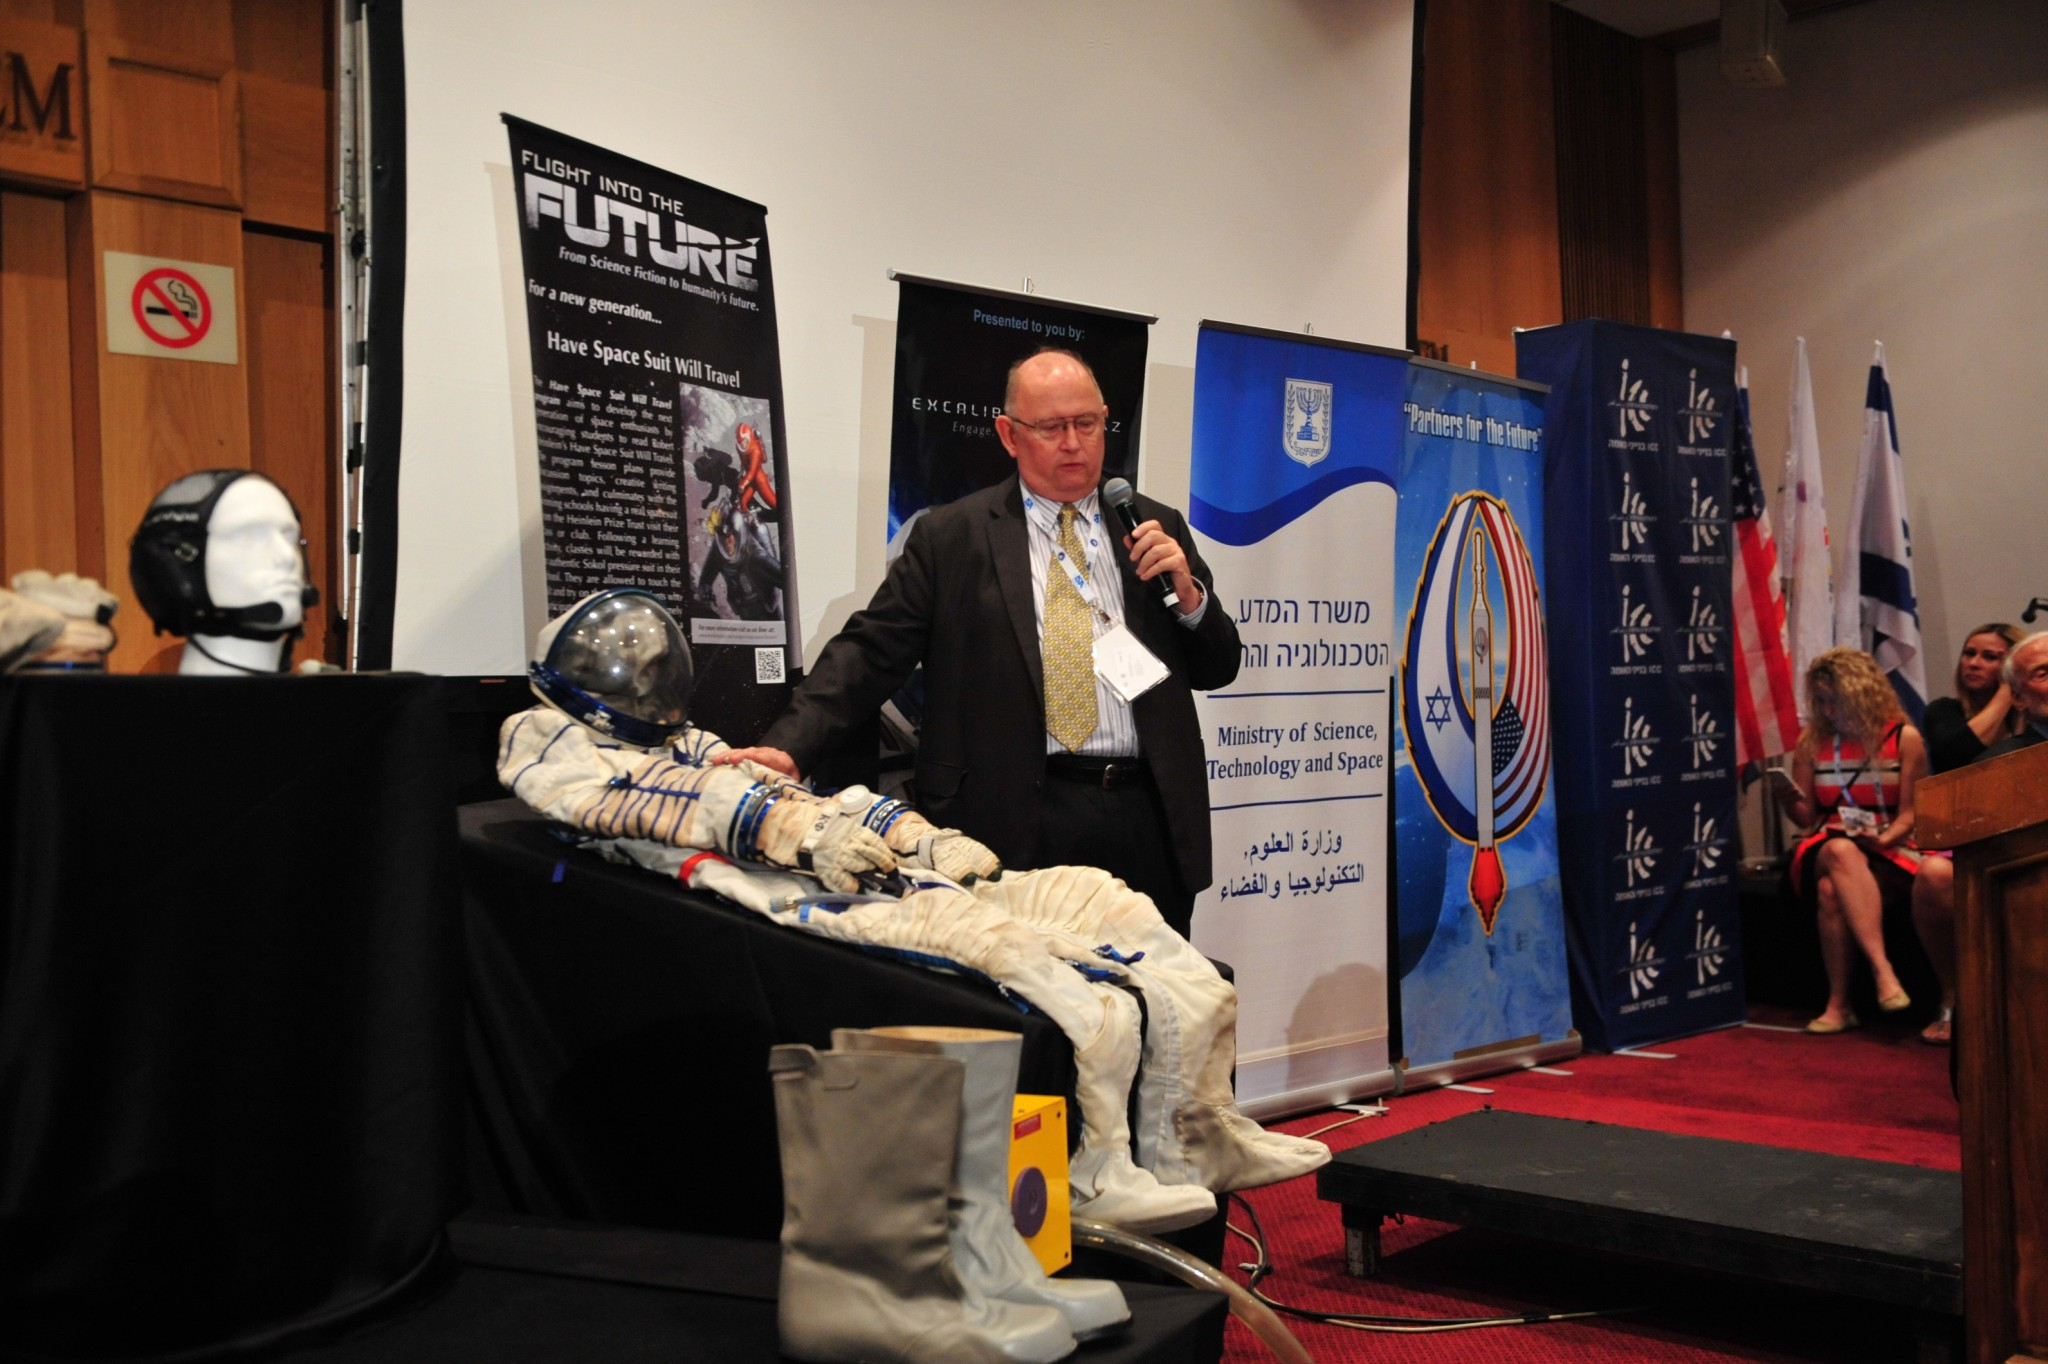 A new space suit at the International Astronautical Congress in Jerusalem.